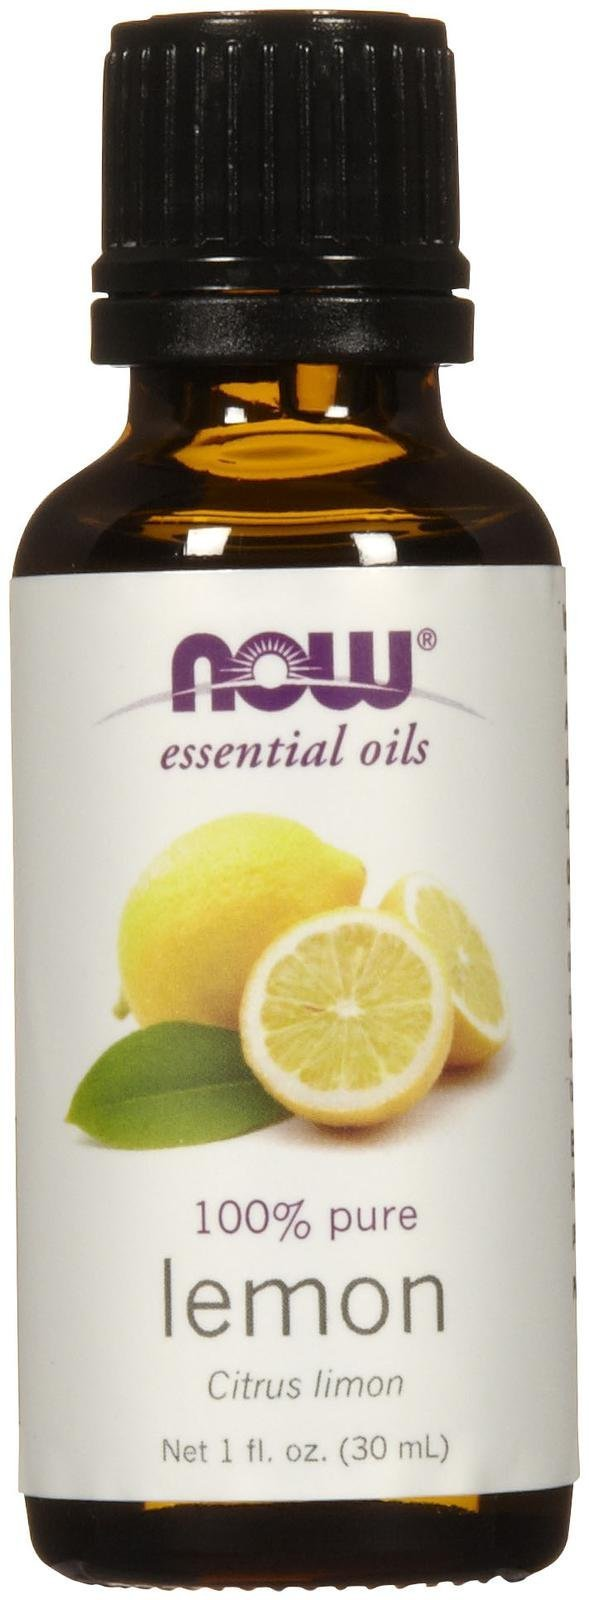 Now Foods Essential Oils Lemon, 1 fl oz 30 ml